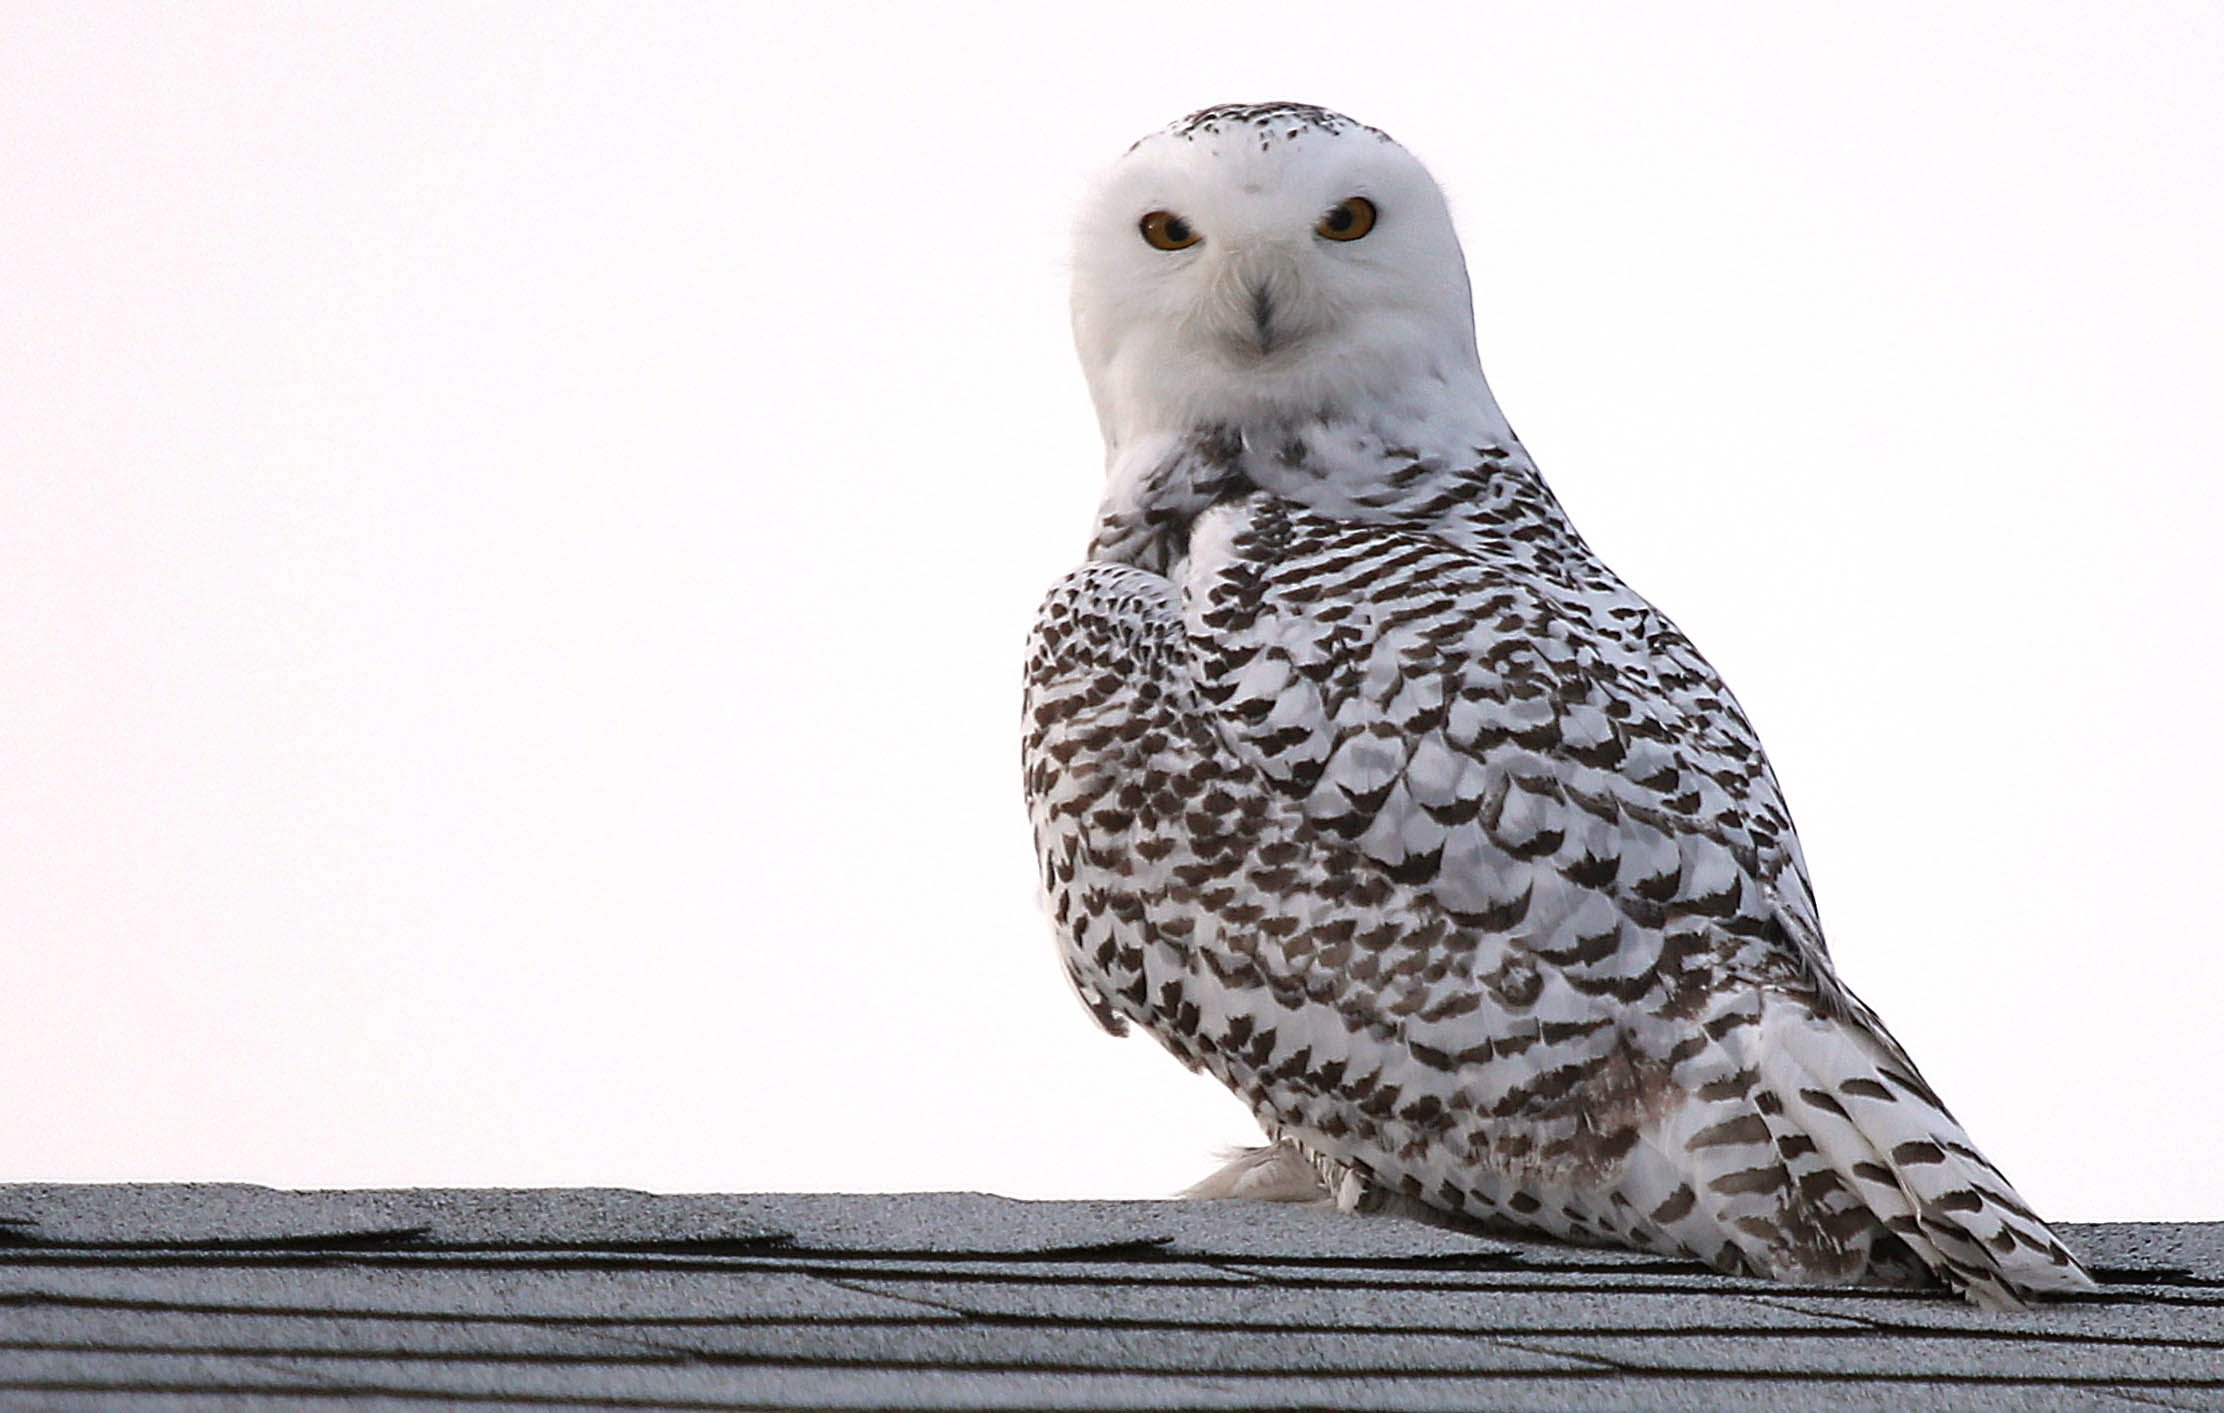 """There are snowy owls everywhere right now. It's still early, but there have been eight or nine sightings so far.""  Marianne Hites, a federally licensed wildlife rehabilitator from Messinger Woods  This snowy owl was seen on the roof of a home on Meadow Lea Drive in Eggertsville, where it stayed for several hours."